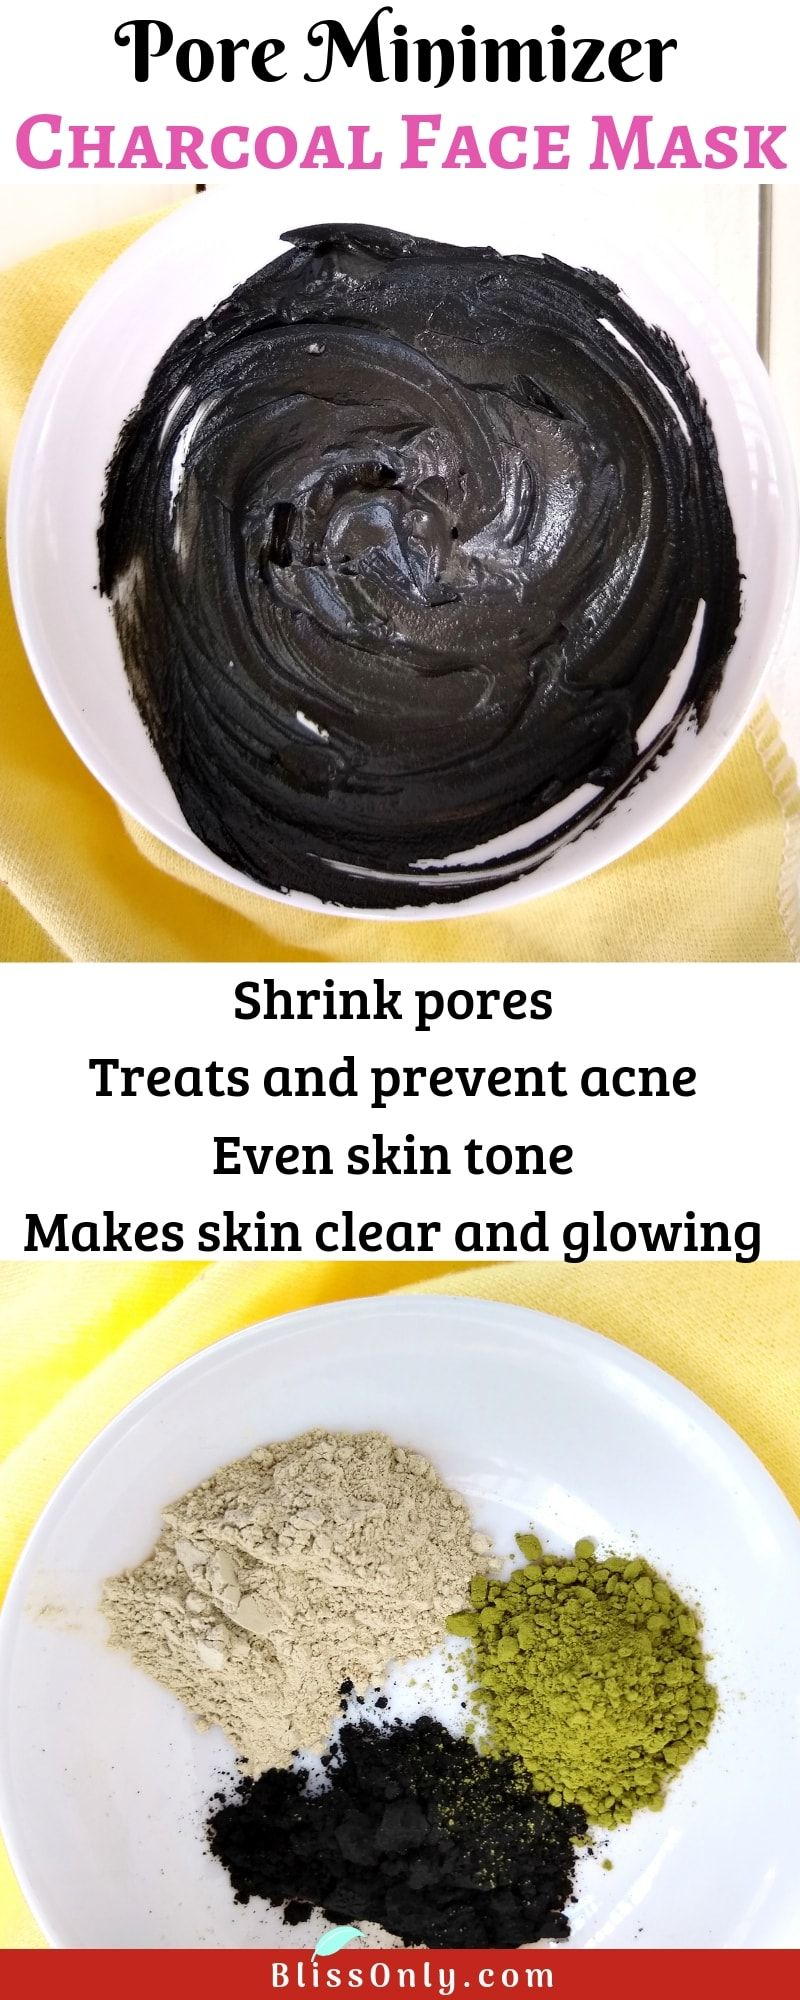 Photo of Pore Minimizer Charcoal Face Mask – BlissOnly